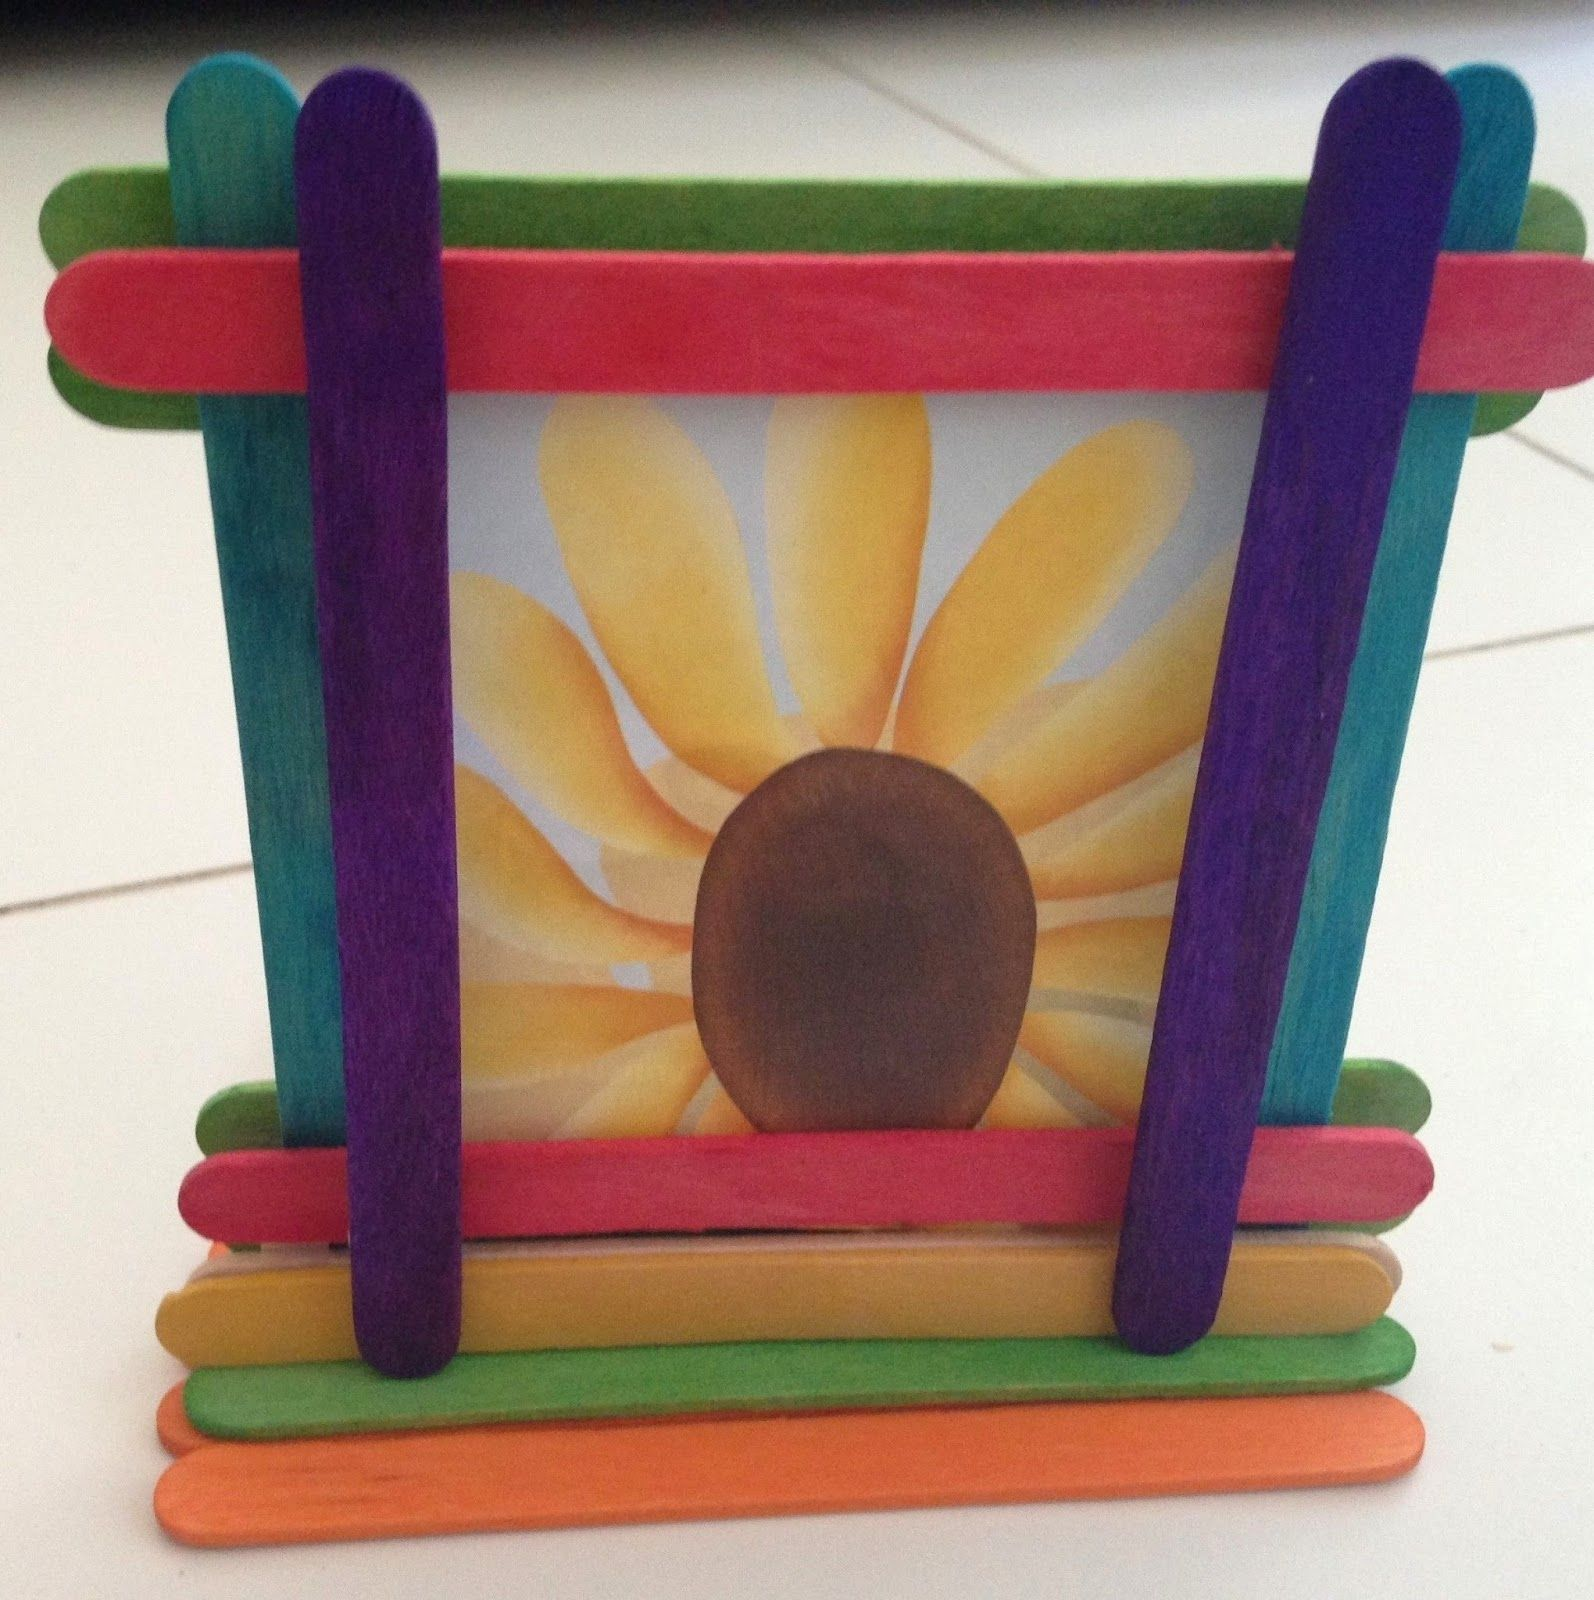 Popsicle stick photo frame using different colors of ice cream sticks